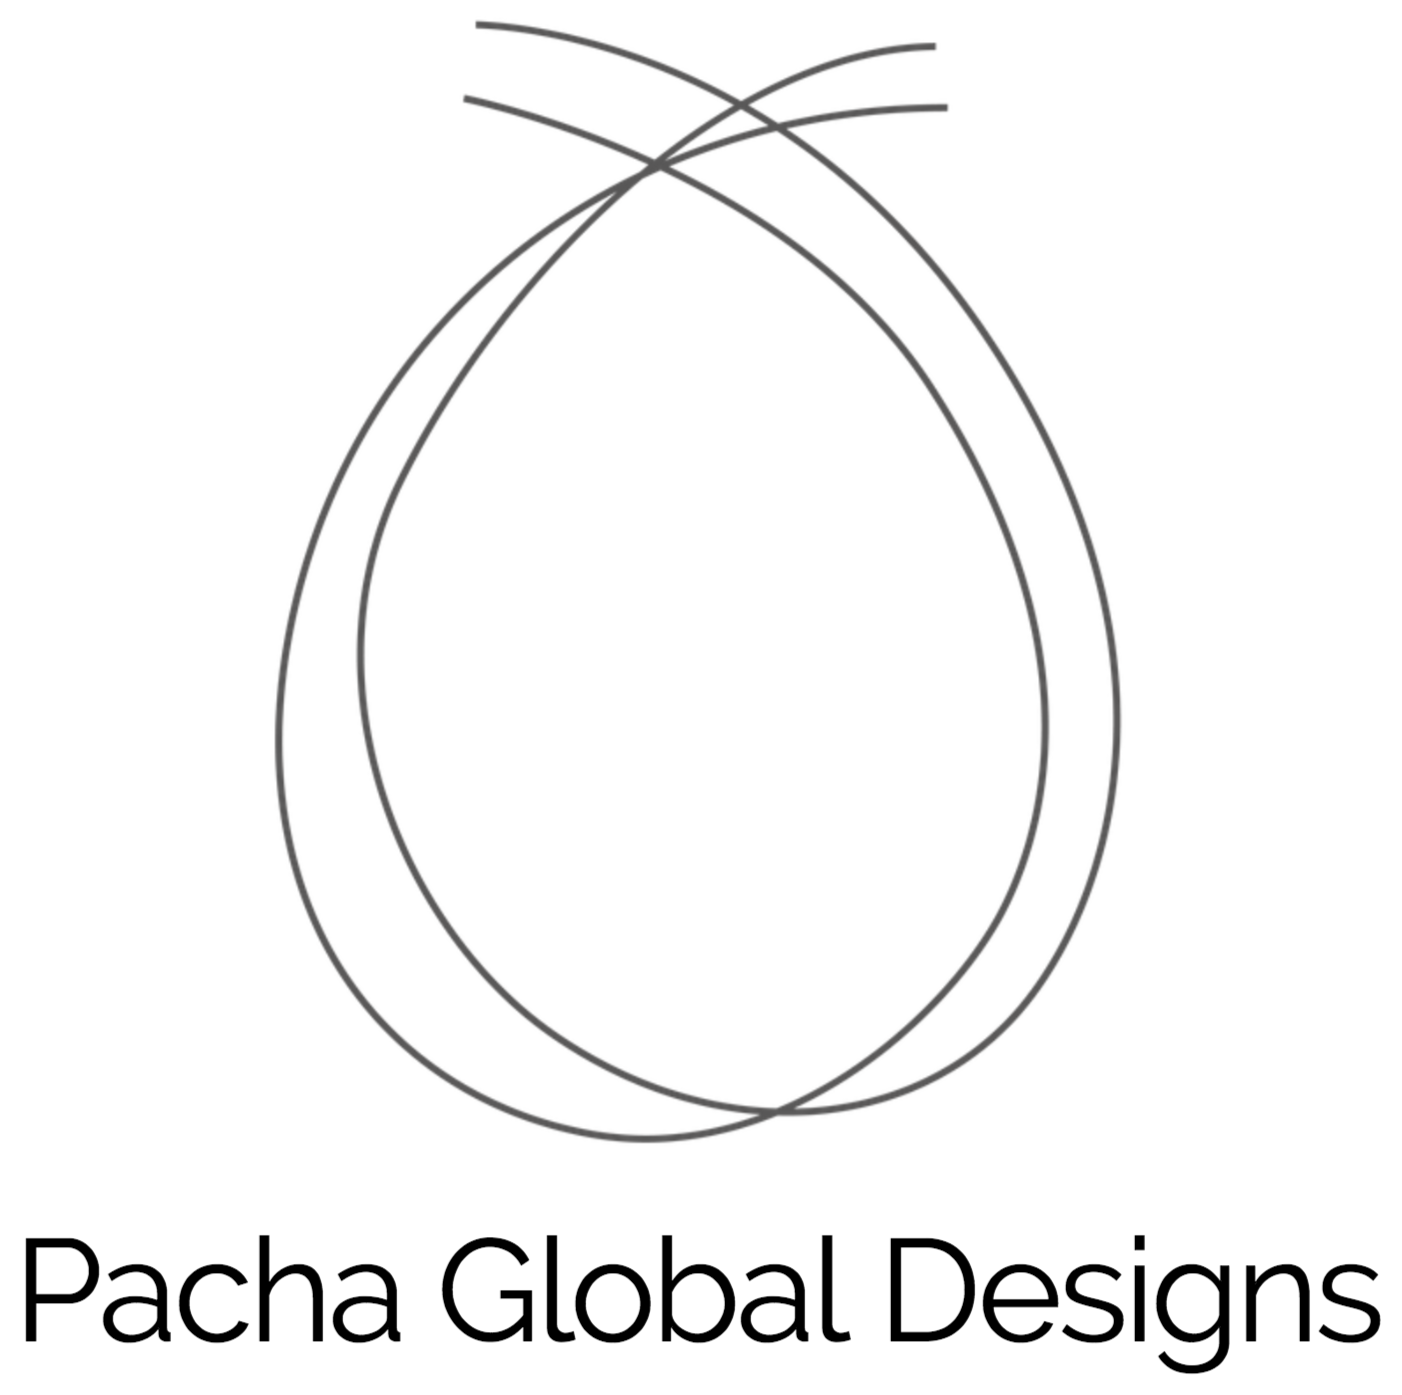 Pacha Global Designs